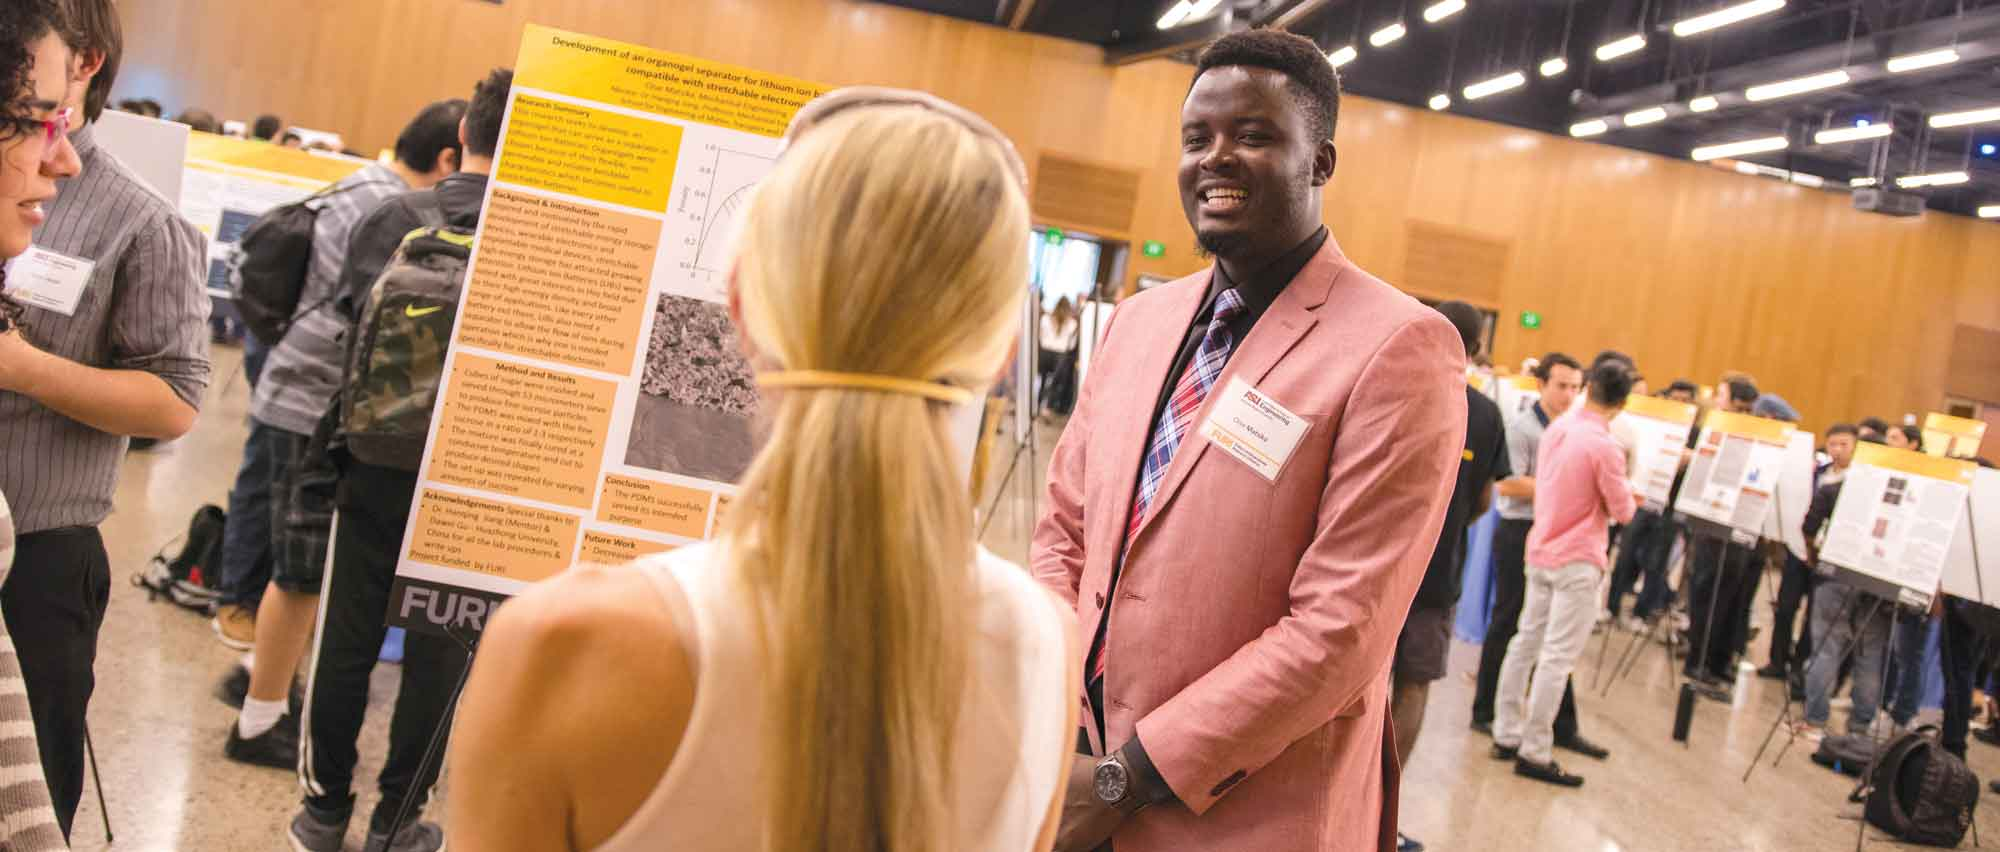 Clive Matsika stands in front of his research poster speaking with an onlooker